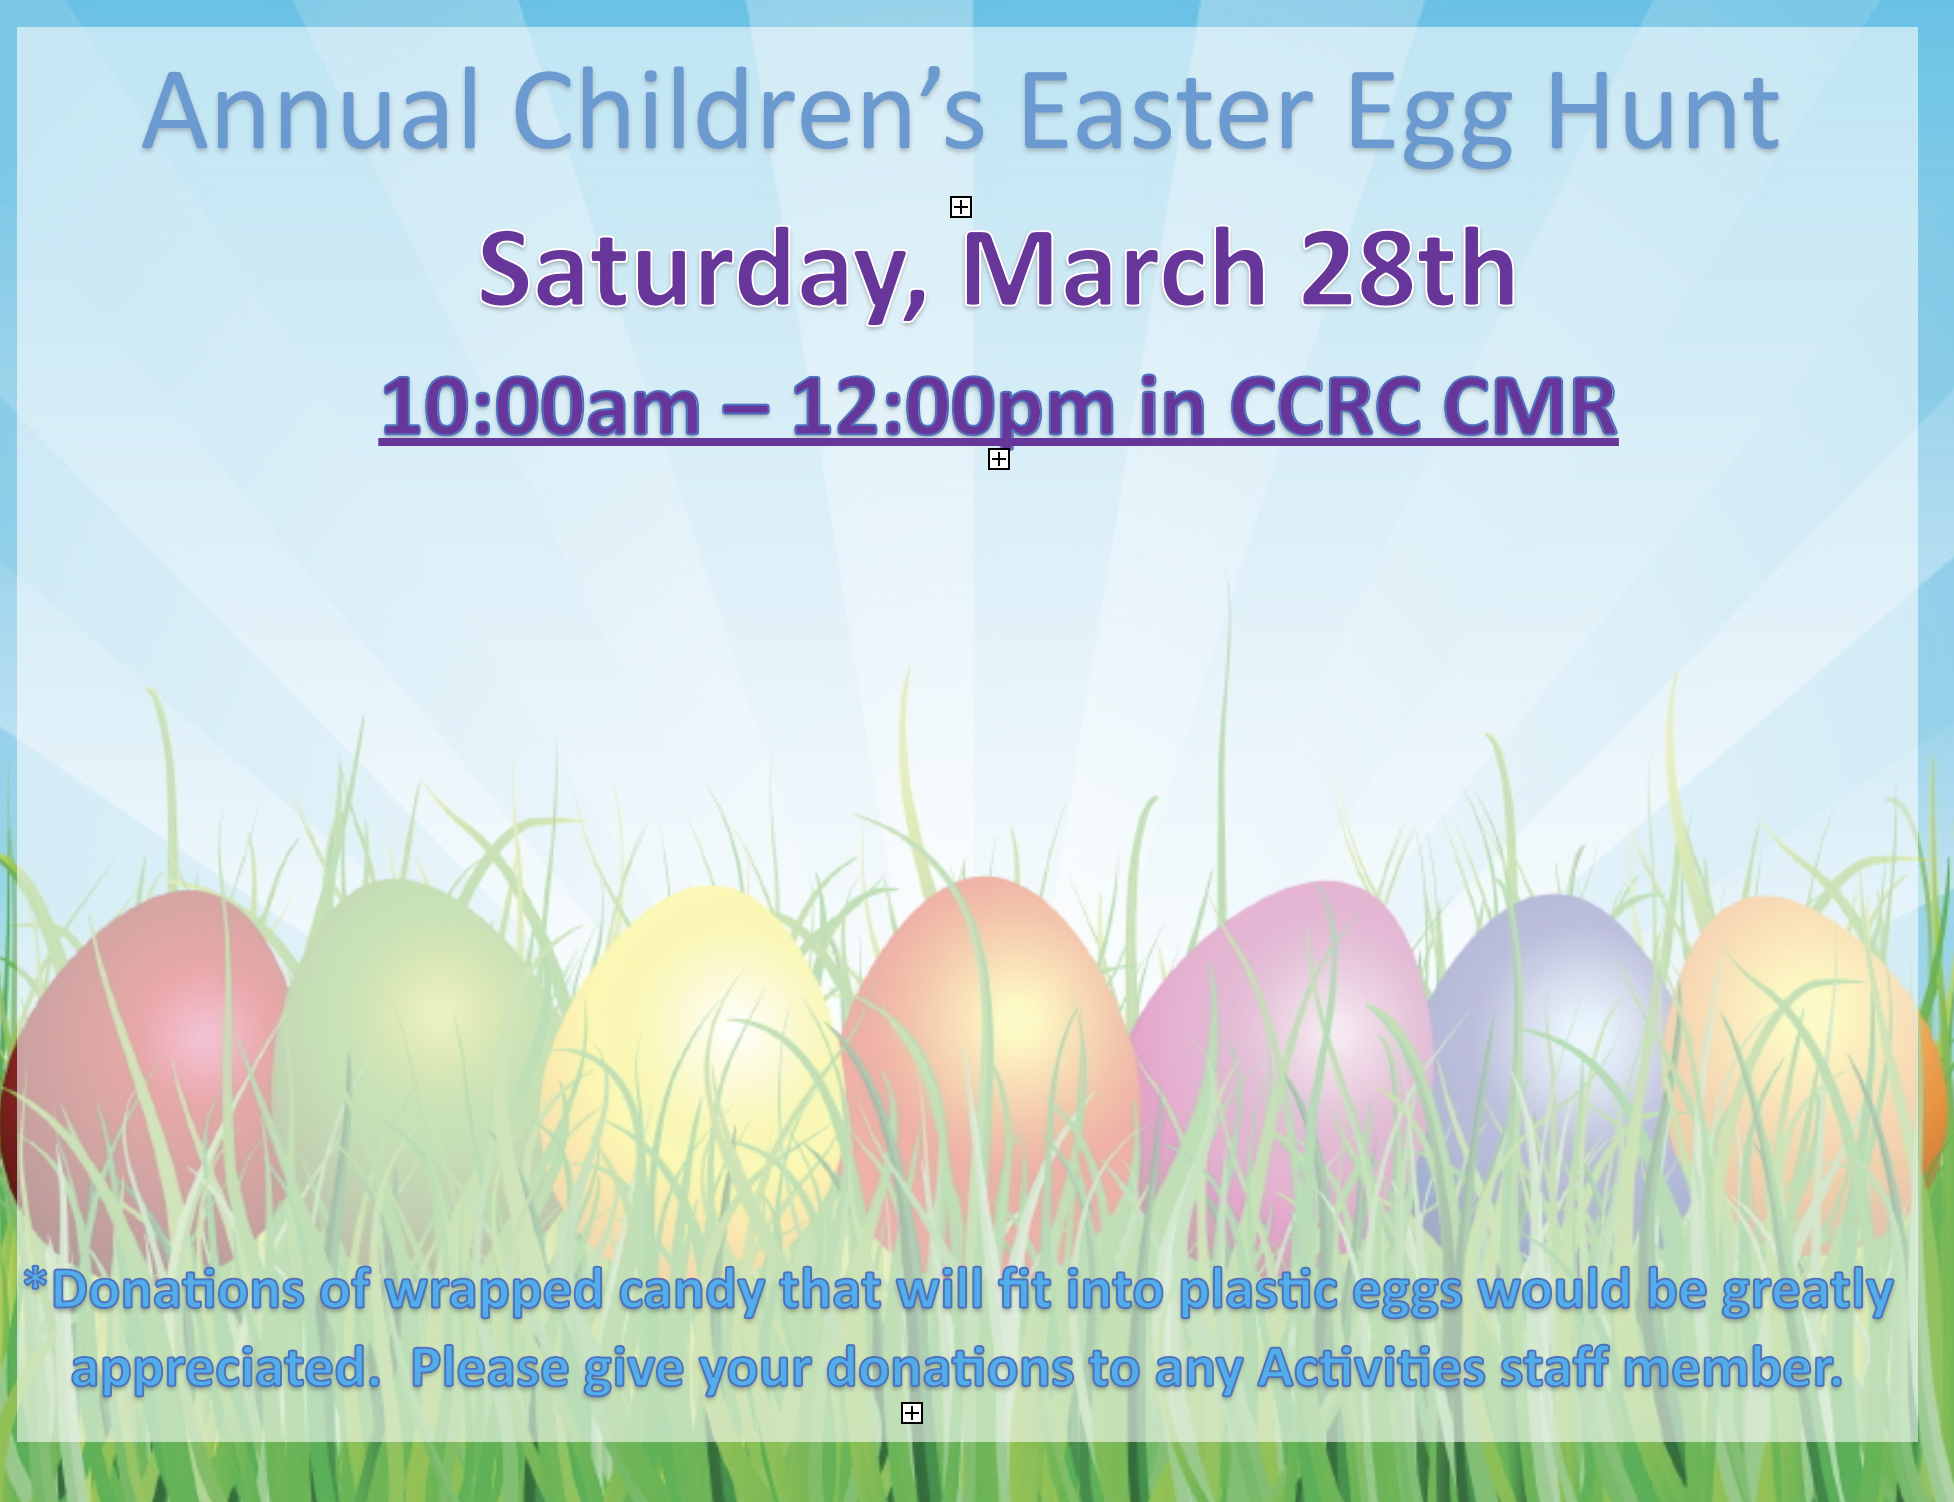 Annual Easter Egg Hunt on March 28 2020 at 10 am